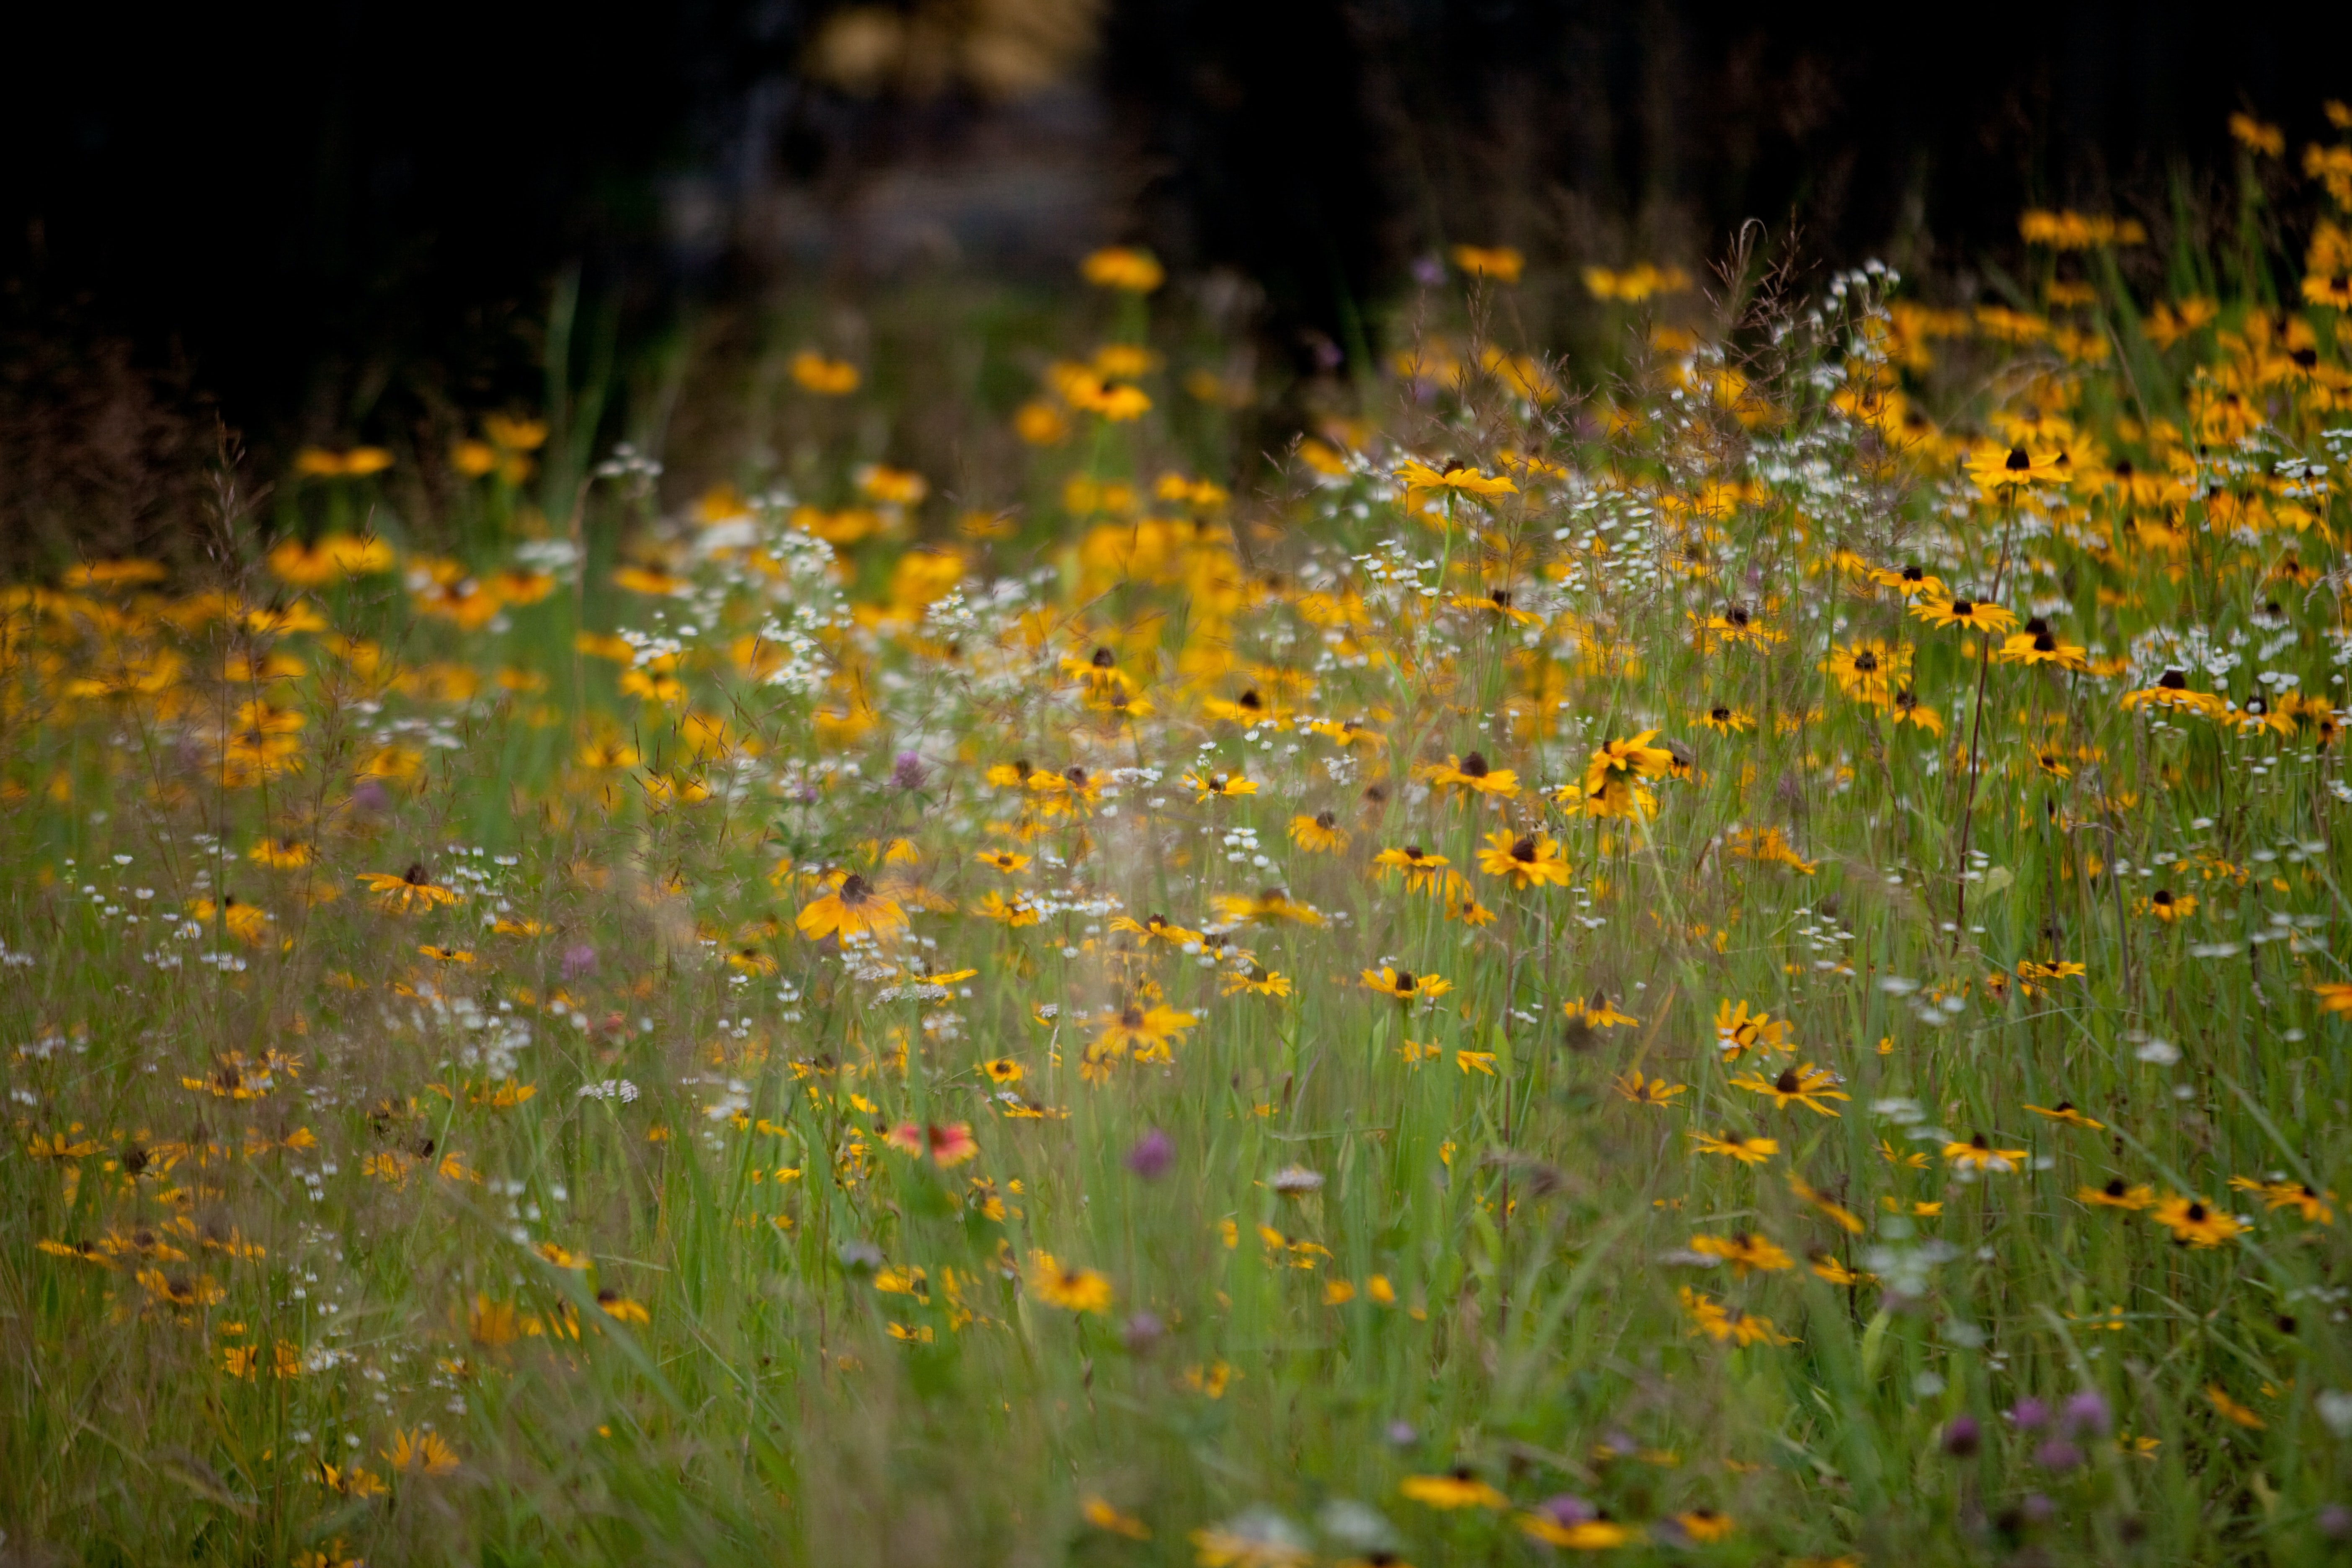 Photo of wildflowers in a meadow.